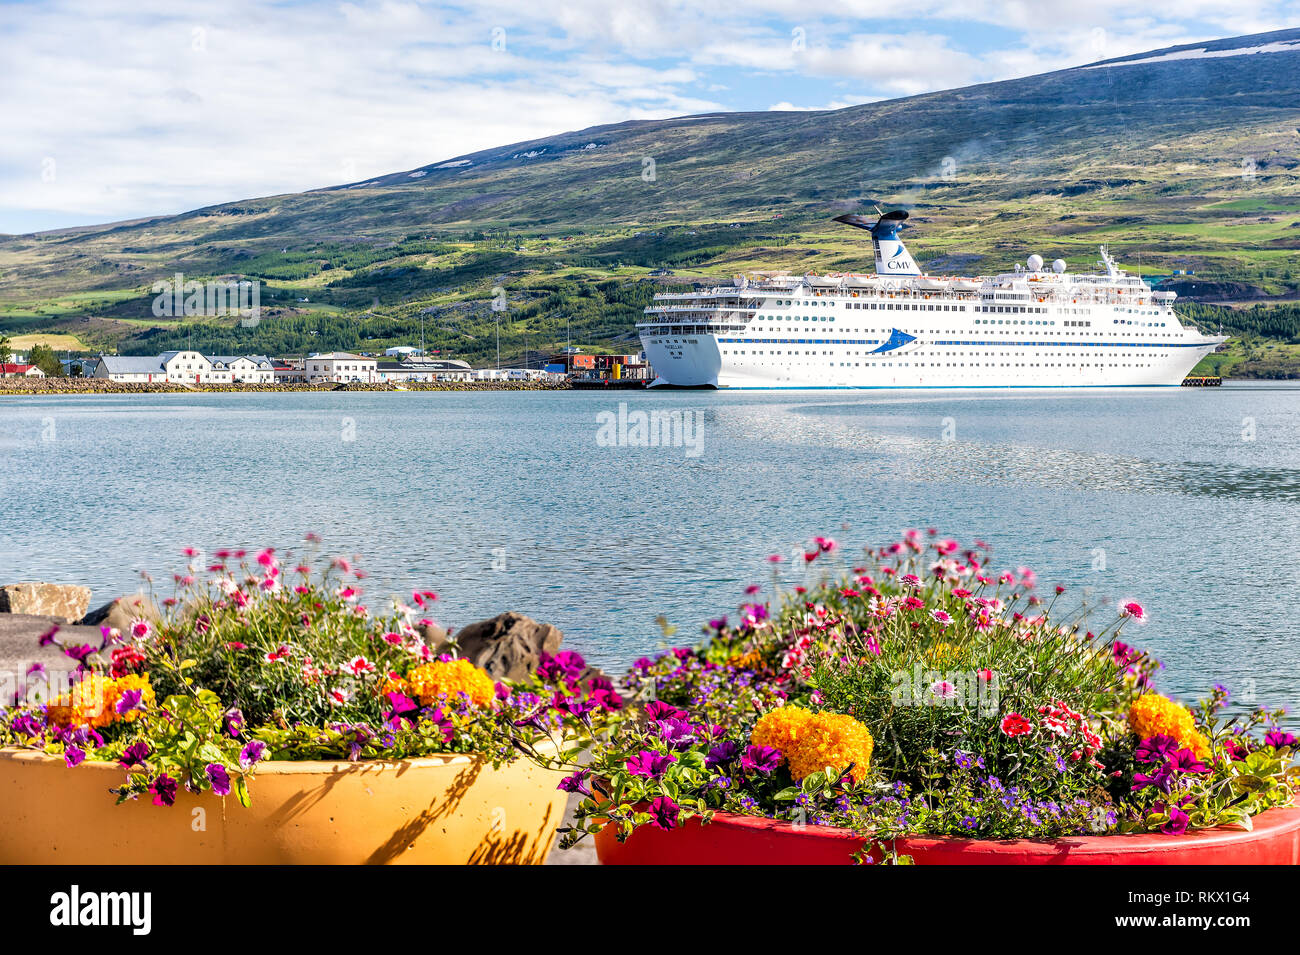 Akureyri, Iceland - June 17, 2018: Fishing village town harbor marina with cruise ship boat and fjord with mountains and flower pots Stock Photo